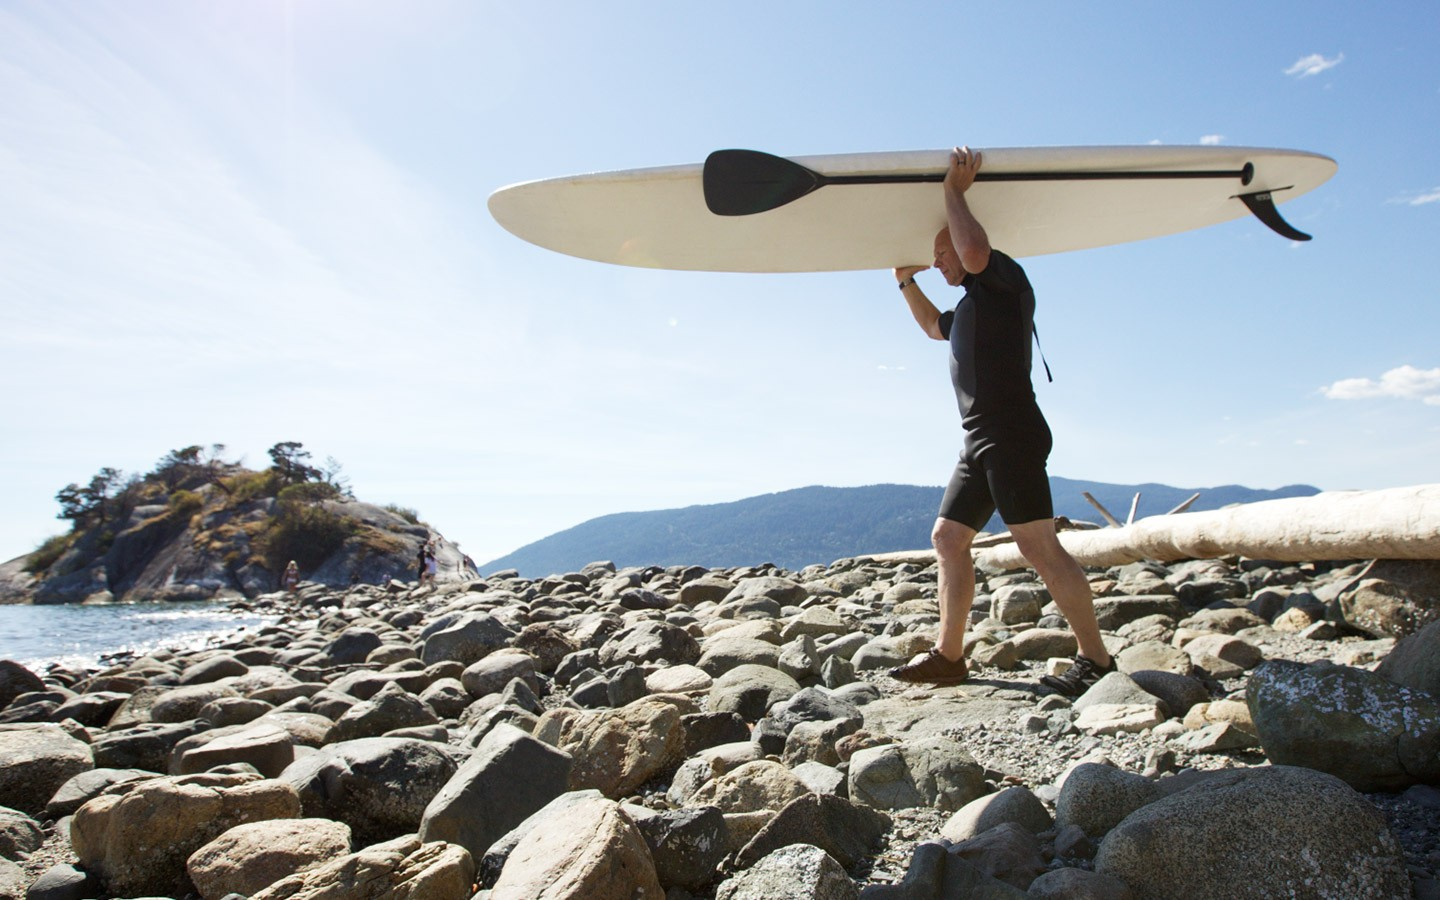 Mature adult carrying paddle board across the beach towards the sea.